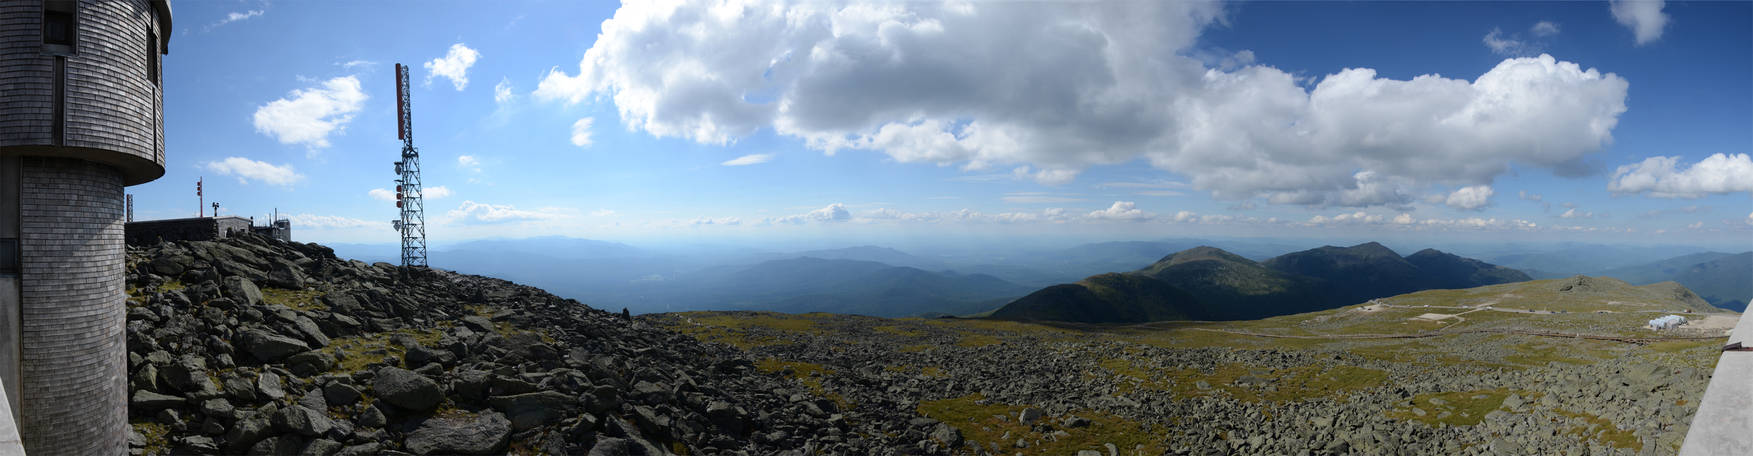 Mount Washington 2012-08-08 3